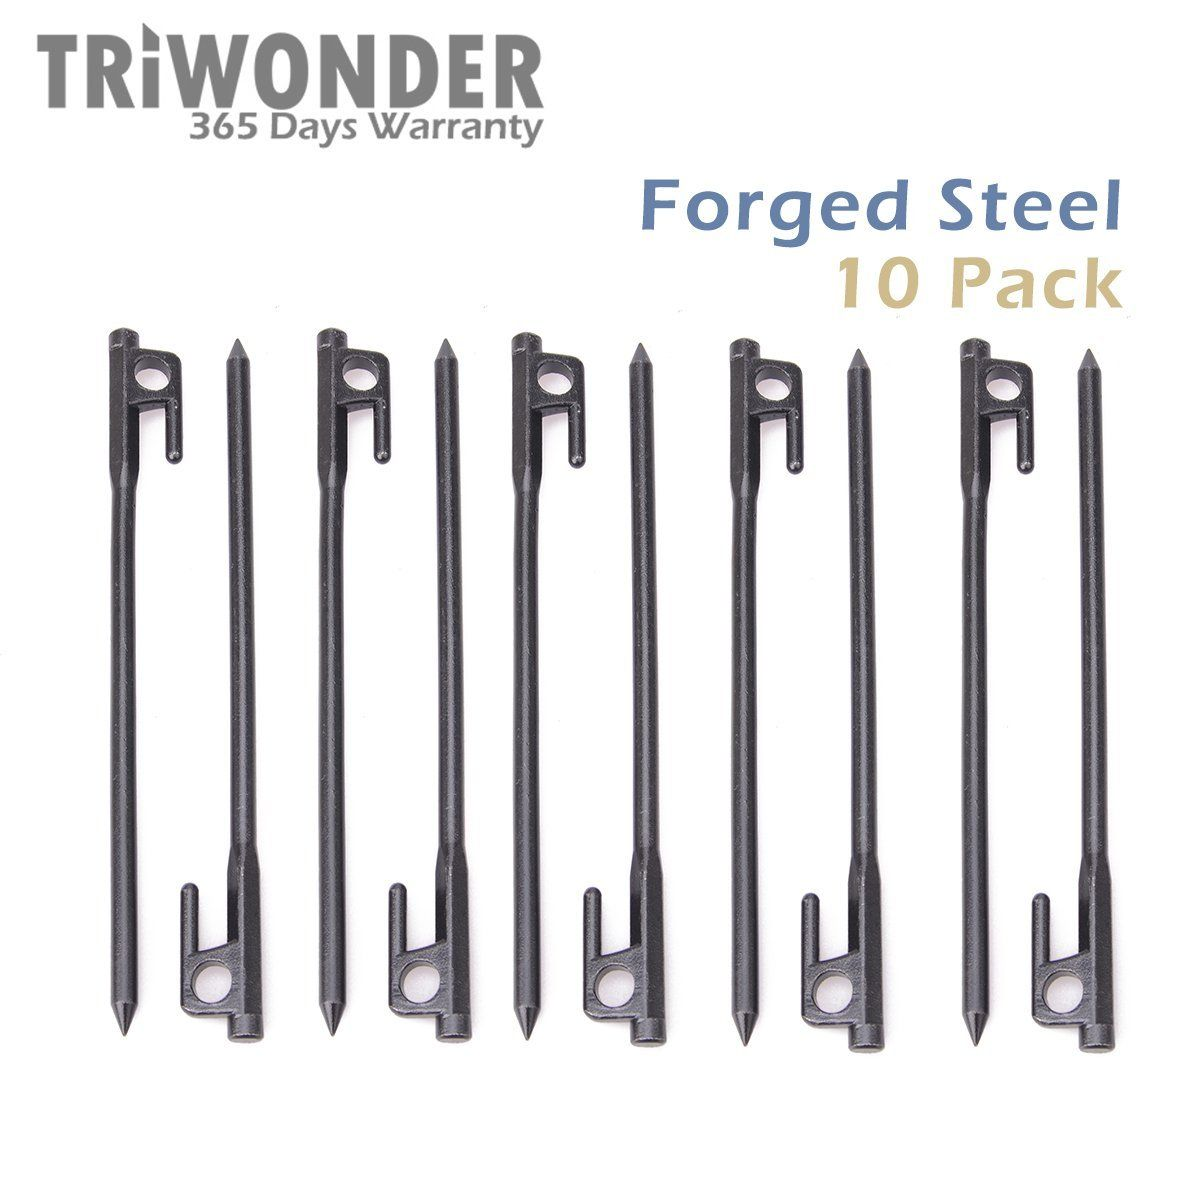 Triwonder 10 Pack Burly Forged Steel Tent Stakes Solid Stakes Footprint Casting Pegs ***  sc 1 st  Pinterest & Triwonder 10 Pack Burly Forged Steel Tent Stakes Solid Stakes ...